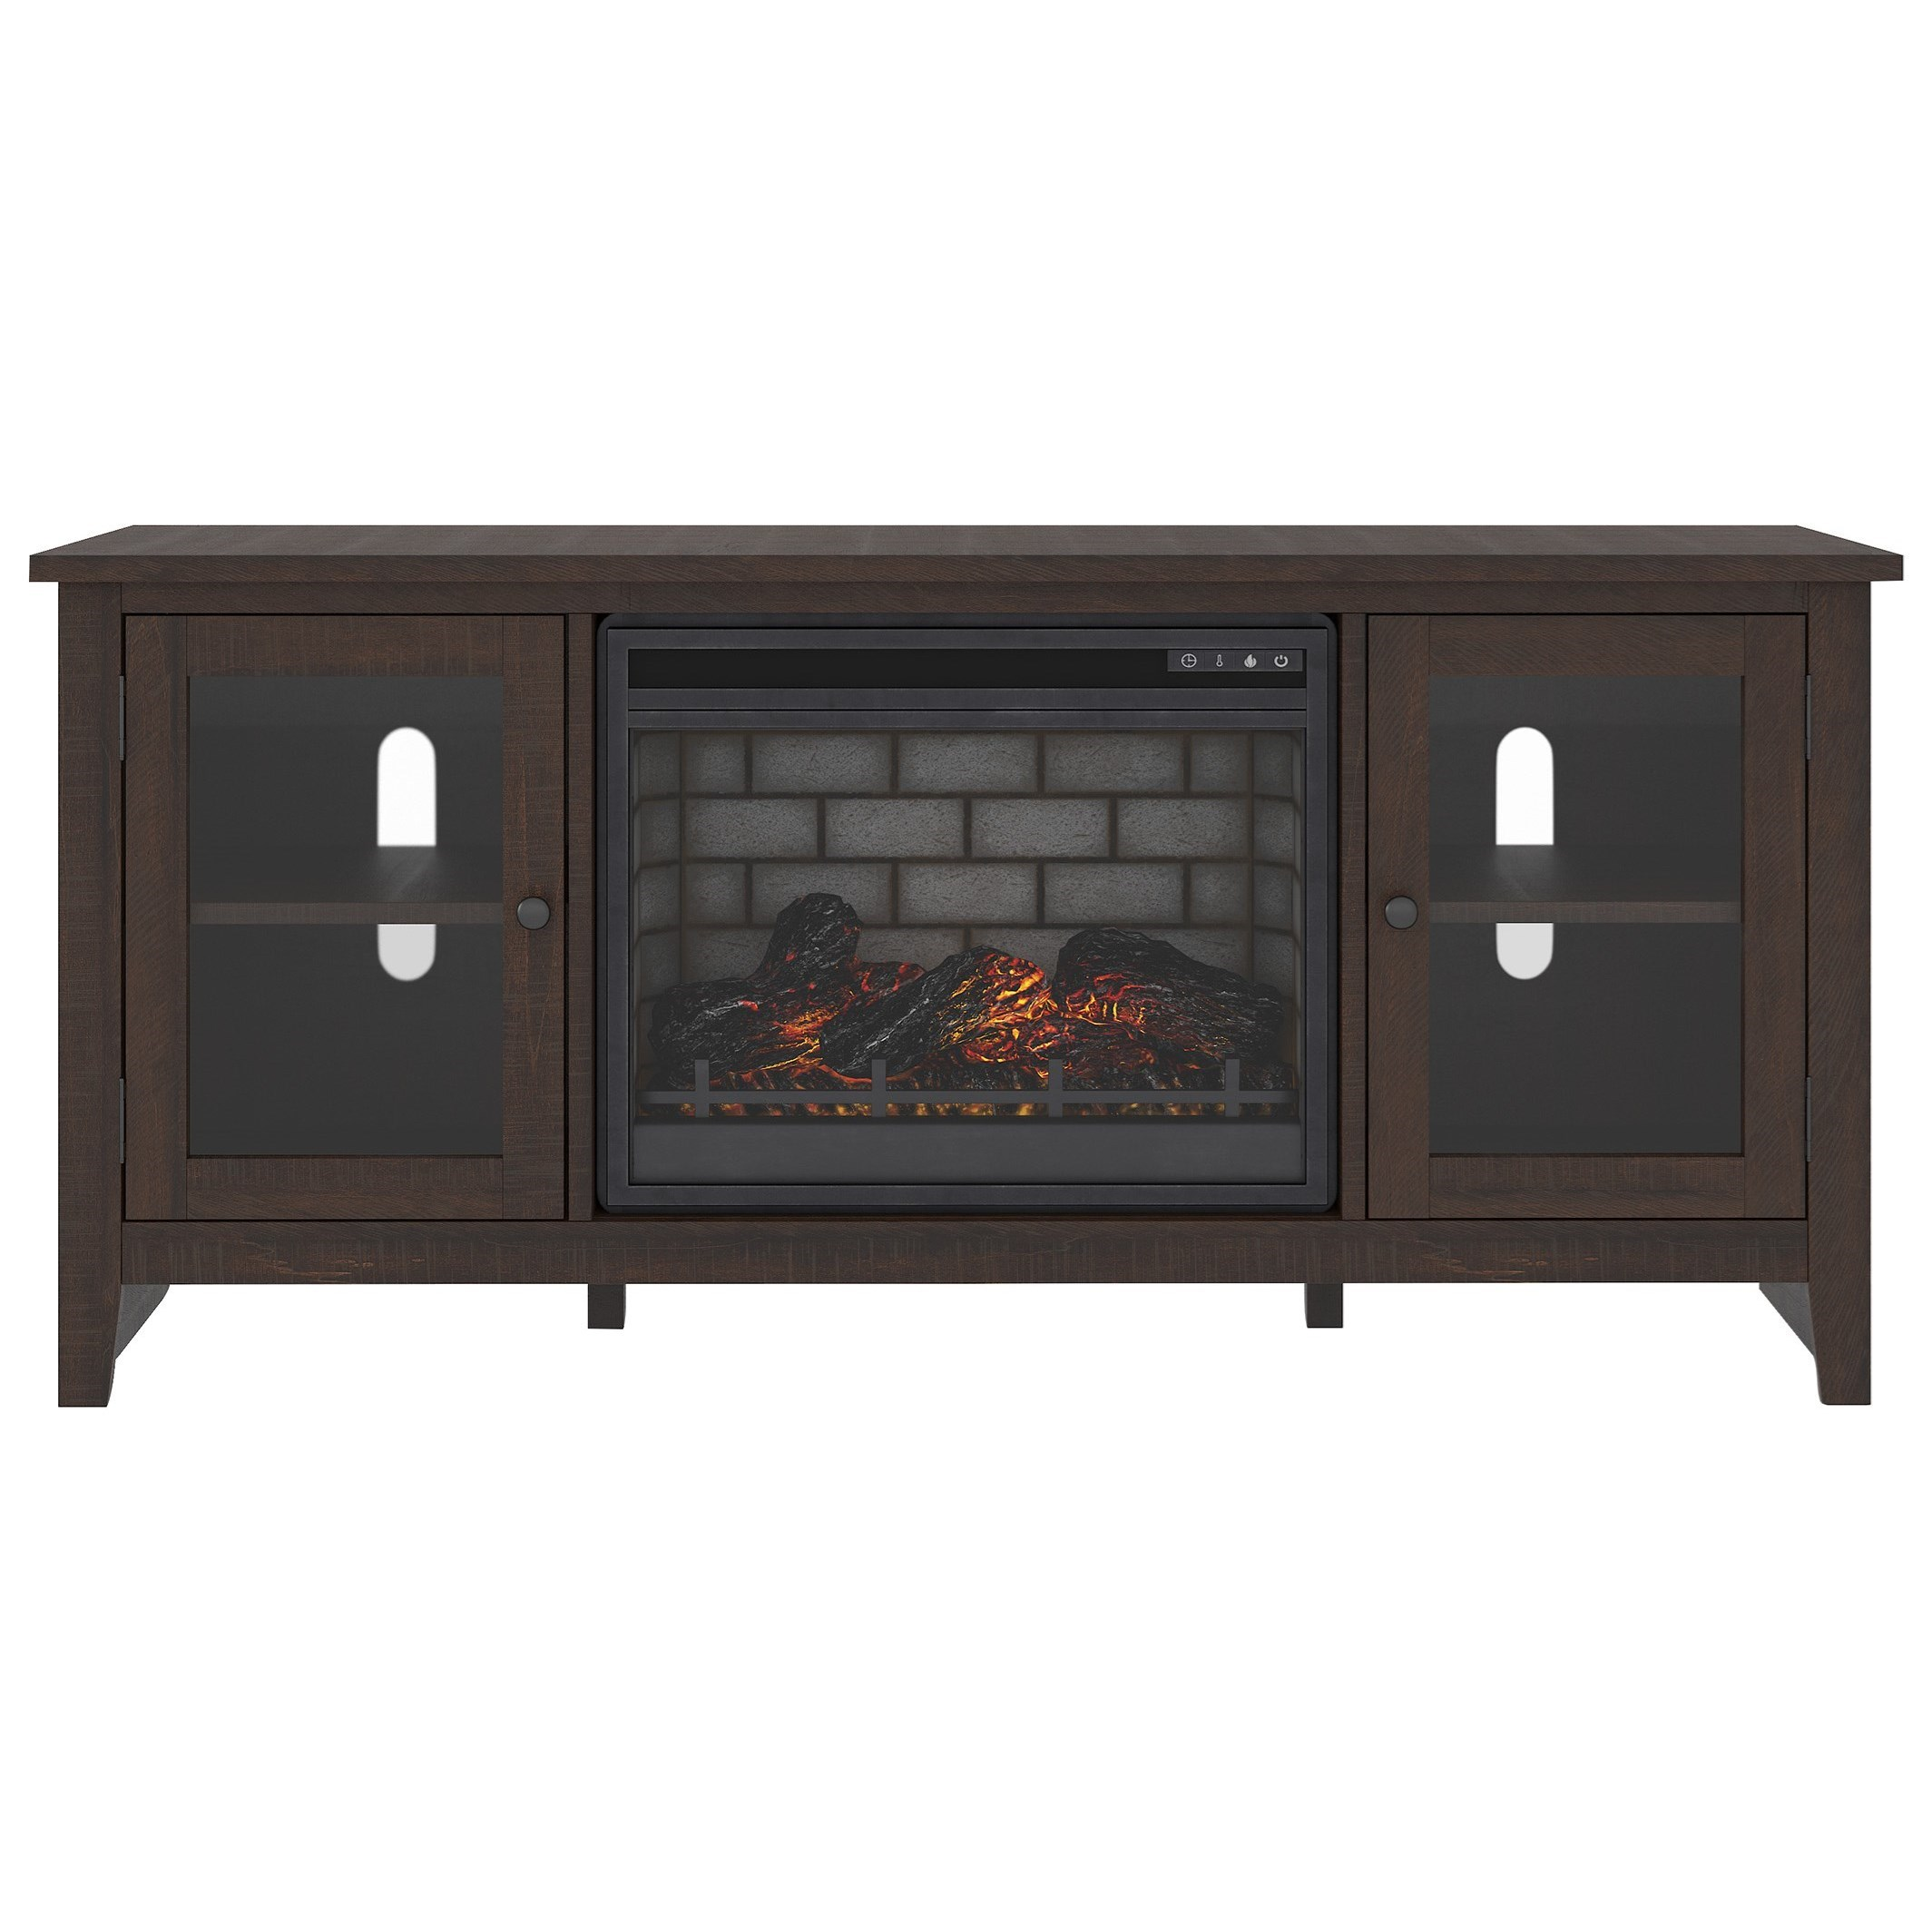 Camiburg Large TV Stand w/ Fireplace Insert by Signature Design by Ashley at Standard Furniture